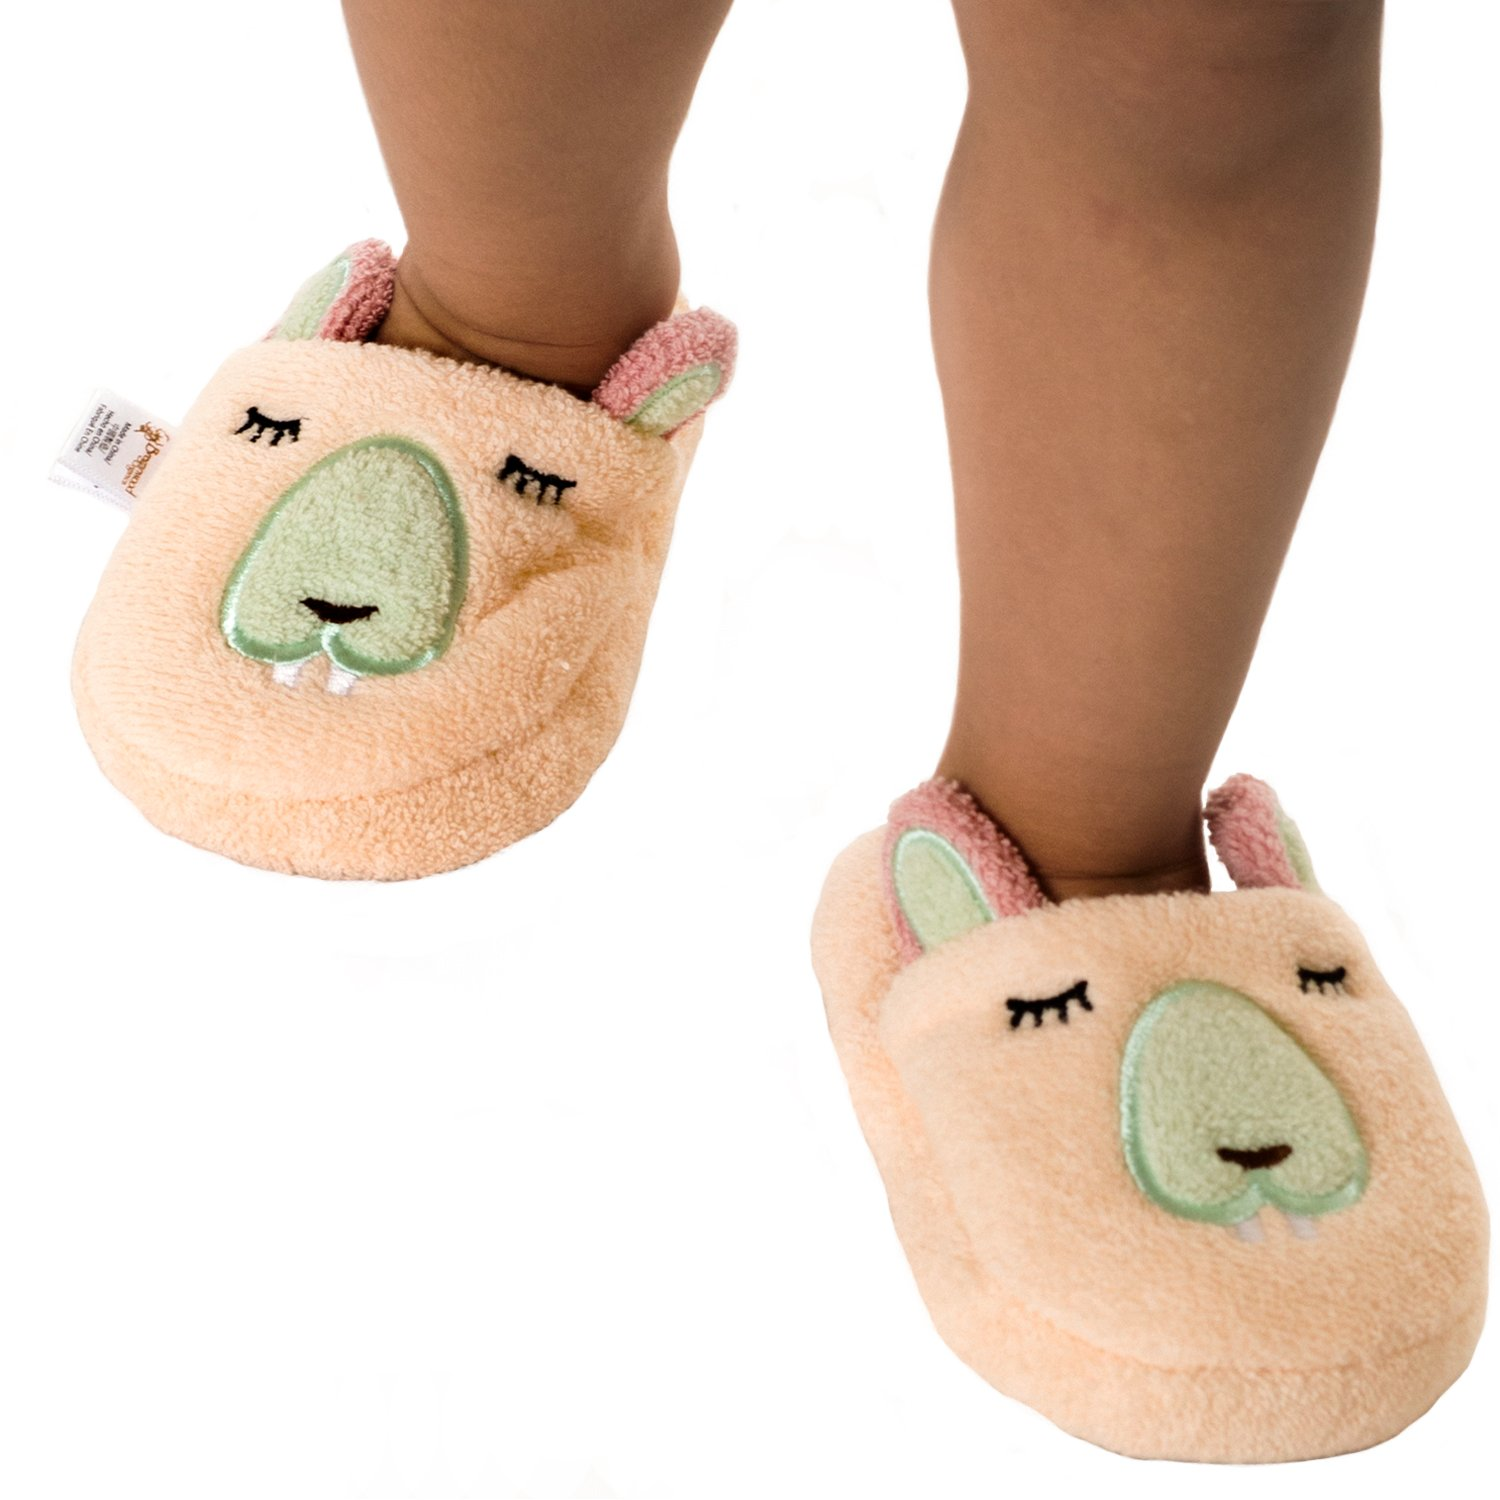 Breganwood Organics Toddlers Terry House Slippers for Boys and Girls, Closed Toe with Non Slip Sole, Pastel Peach Animal Design, Busy Beaver by Breganwood Organics (Image #3)